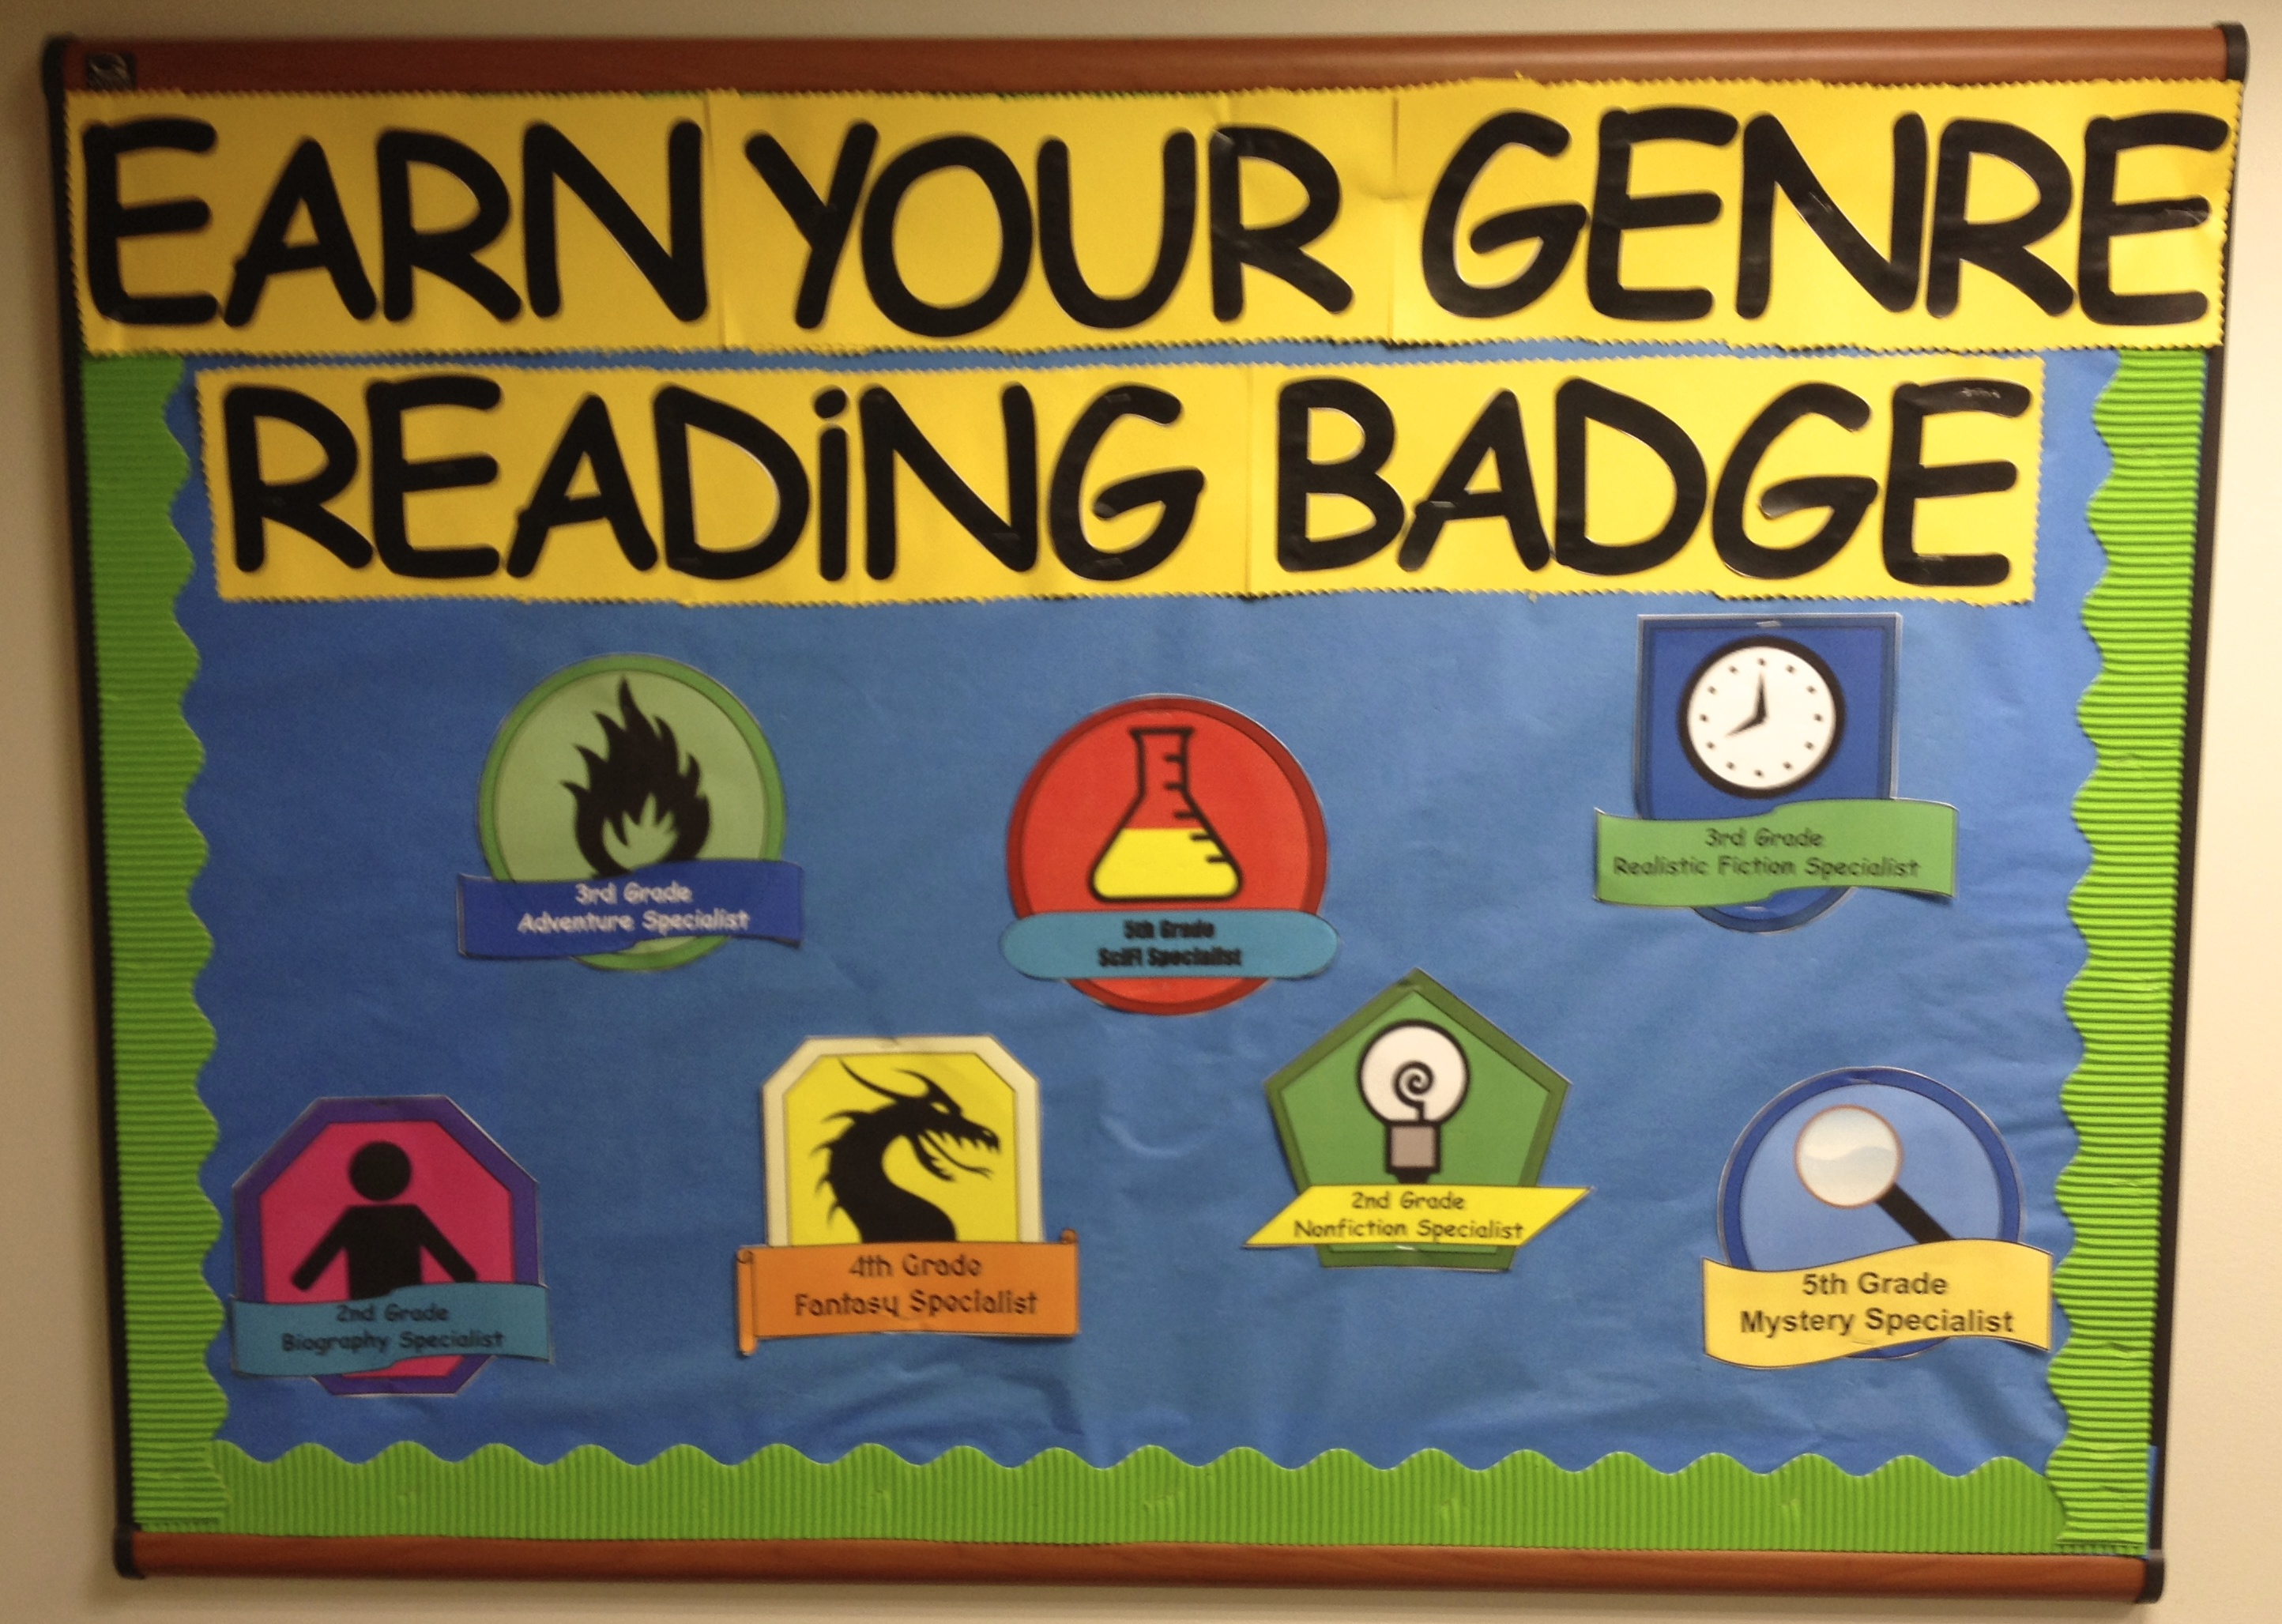 Motivating Literacy Digital Badges In The School Library